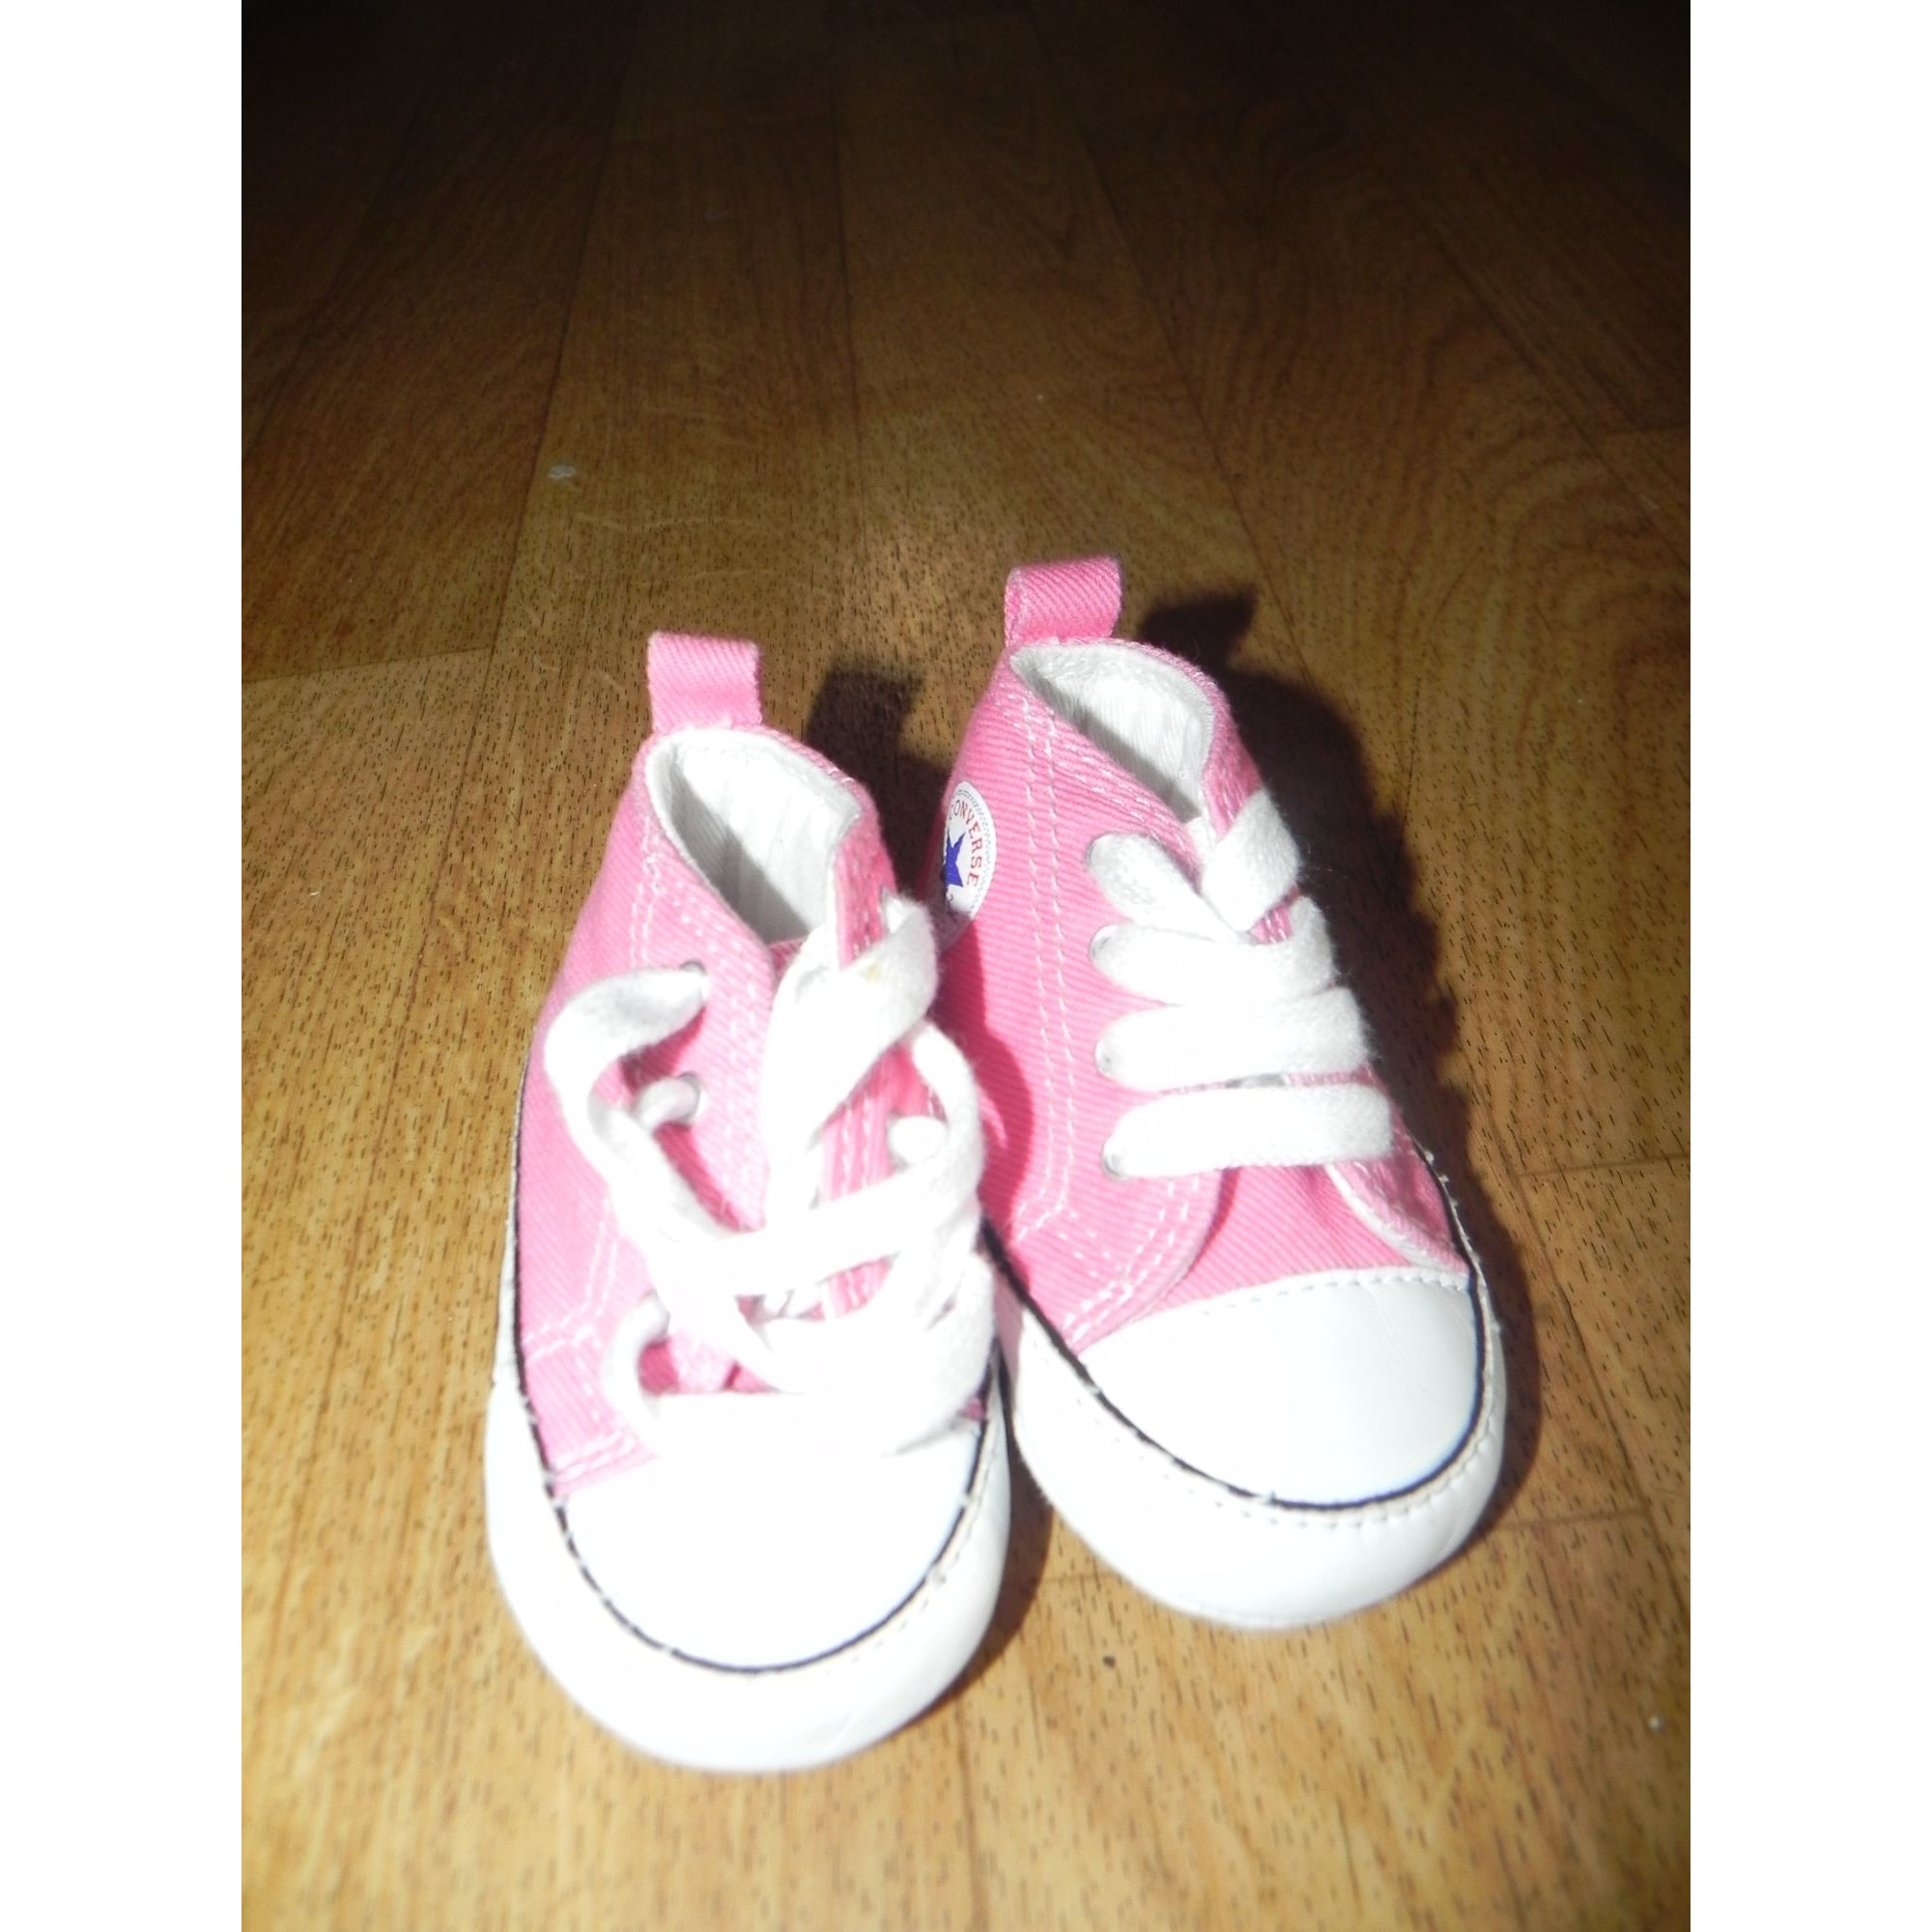 Sneakers CONVERSE Pink, fuchsia, light pink